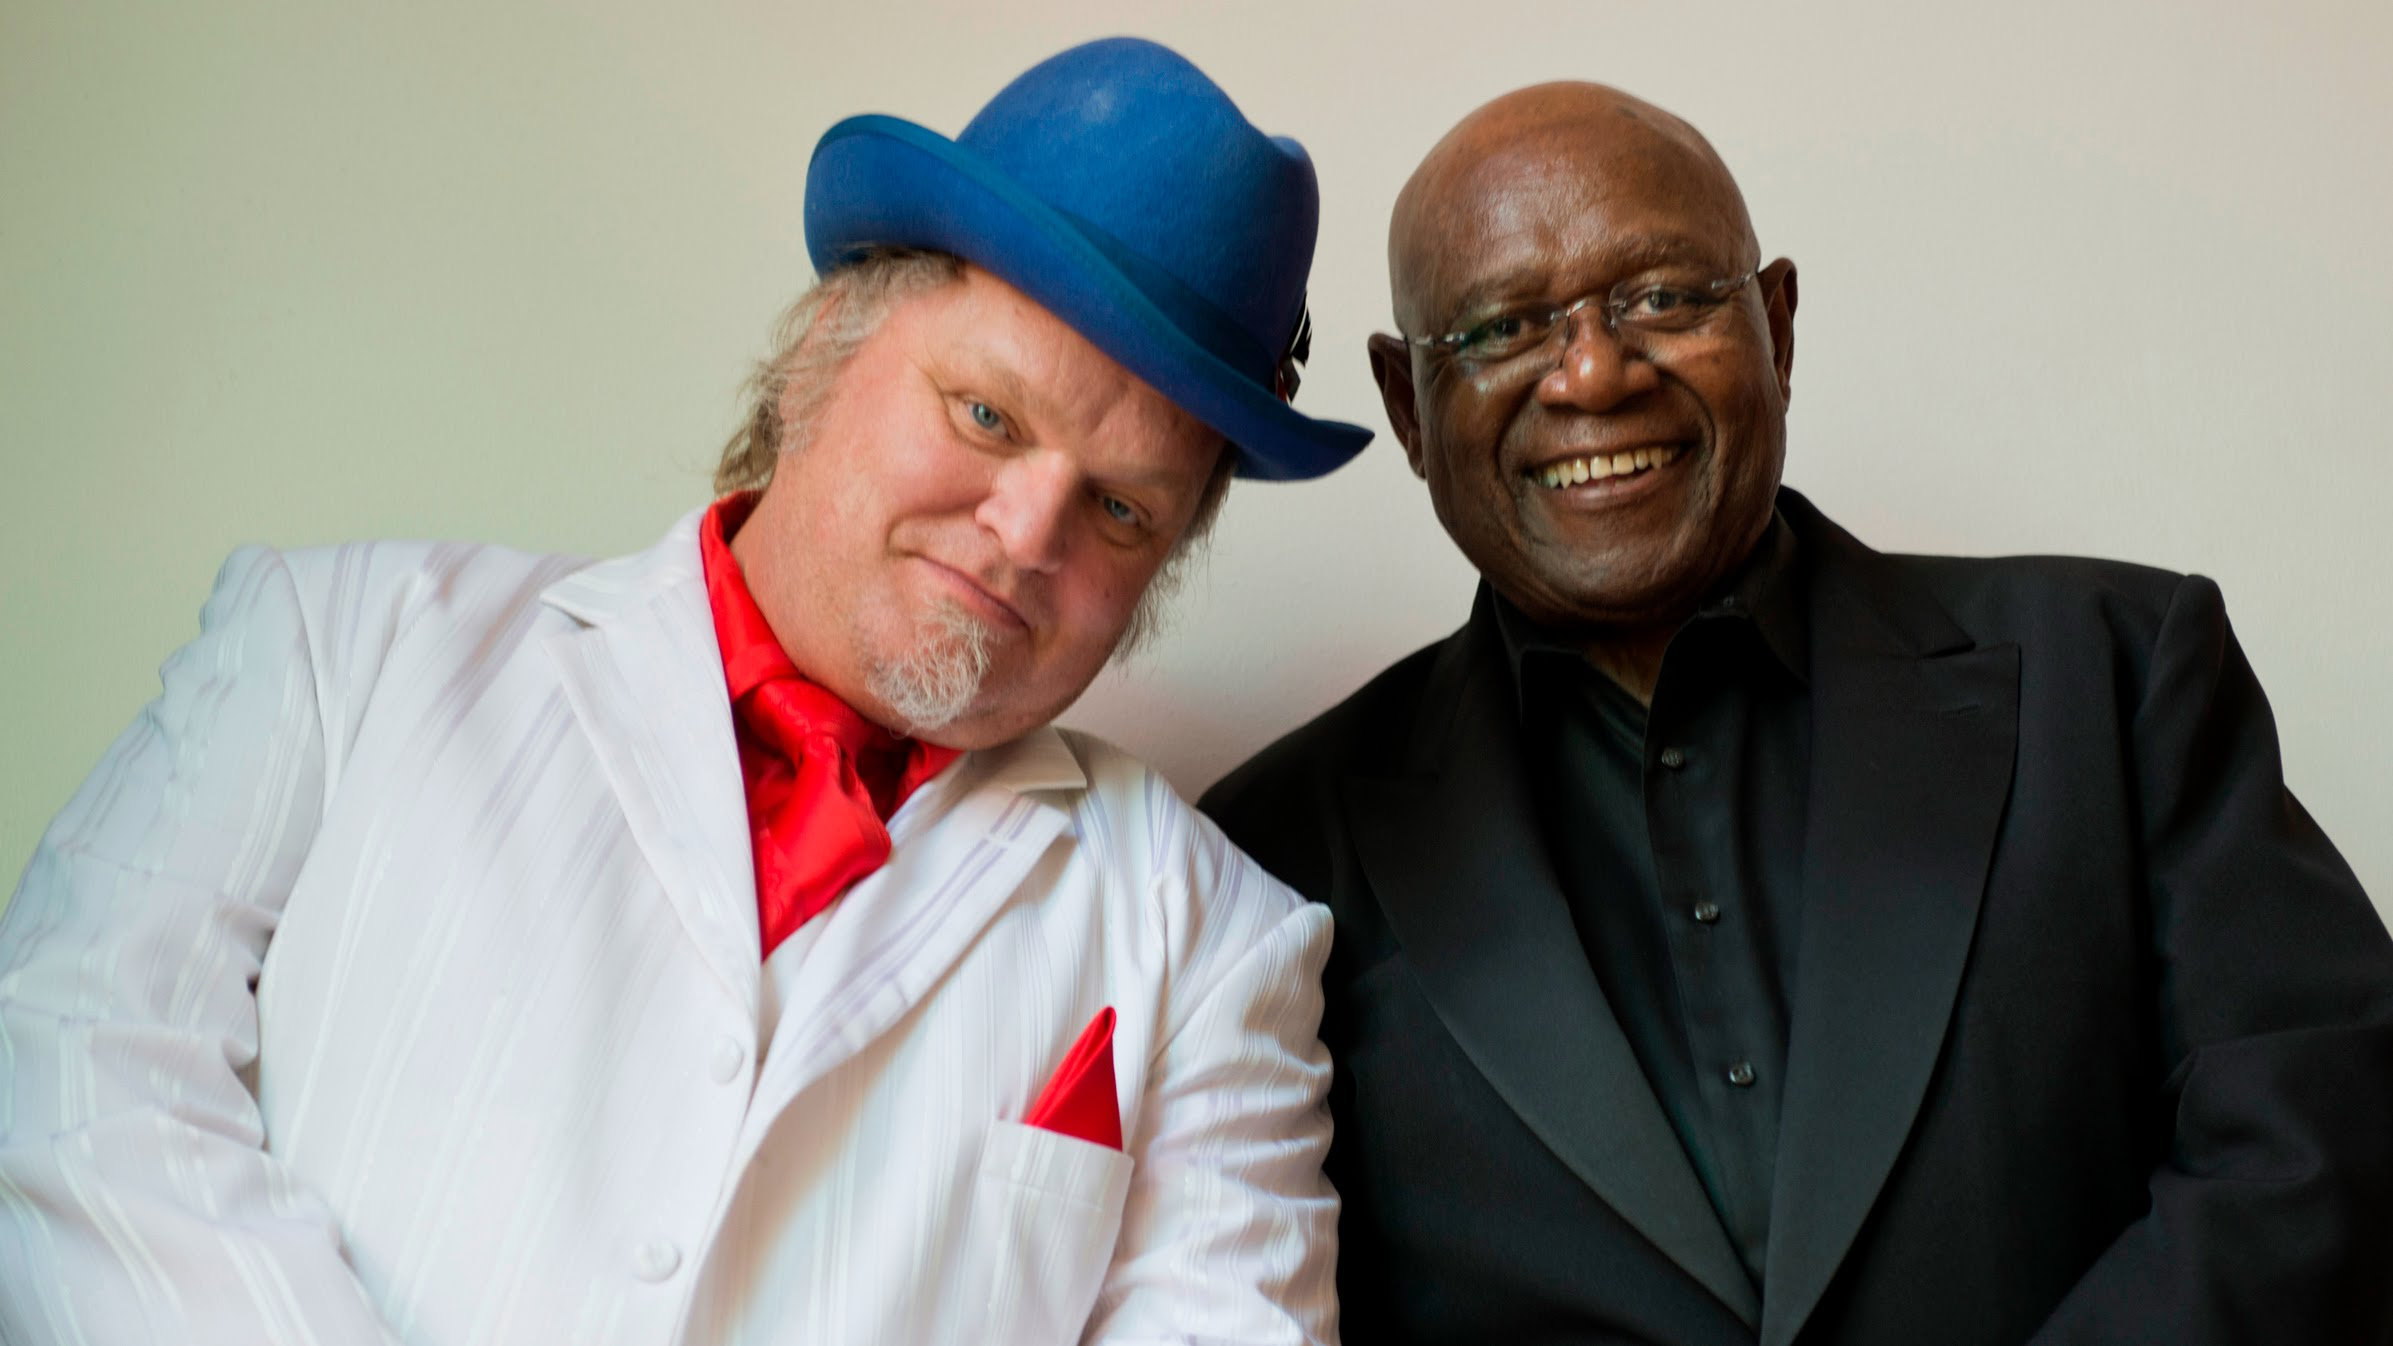 Sam McClain and Knut